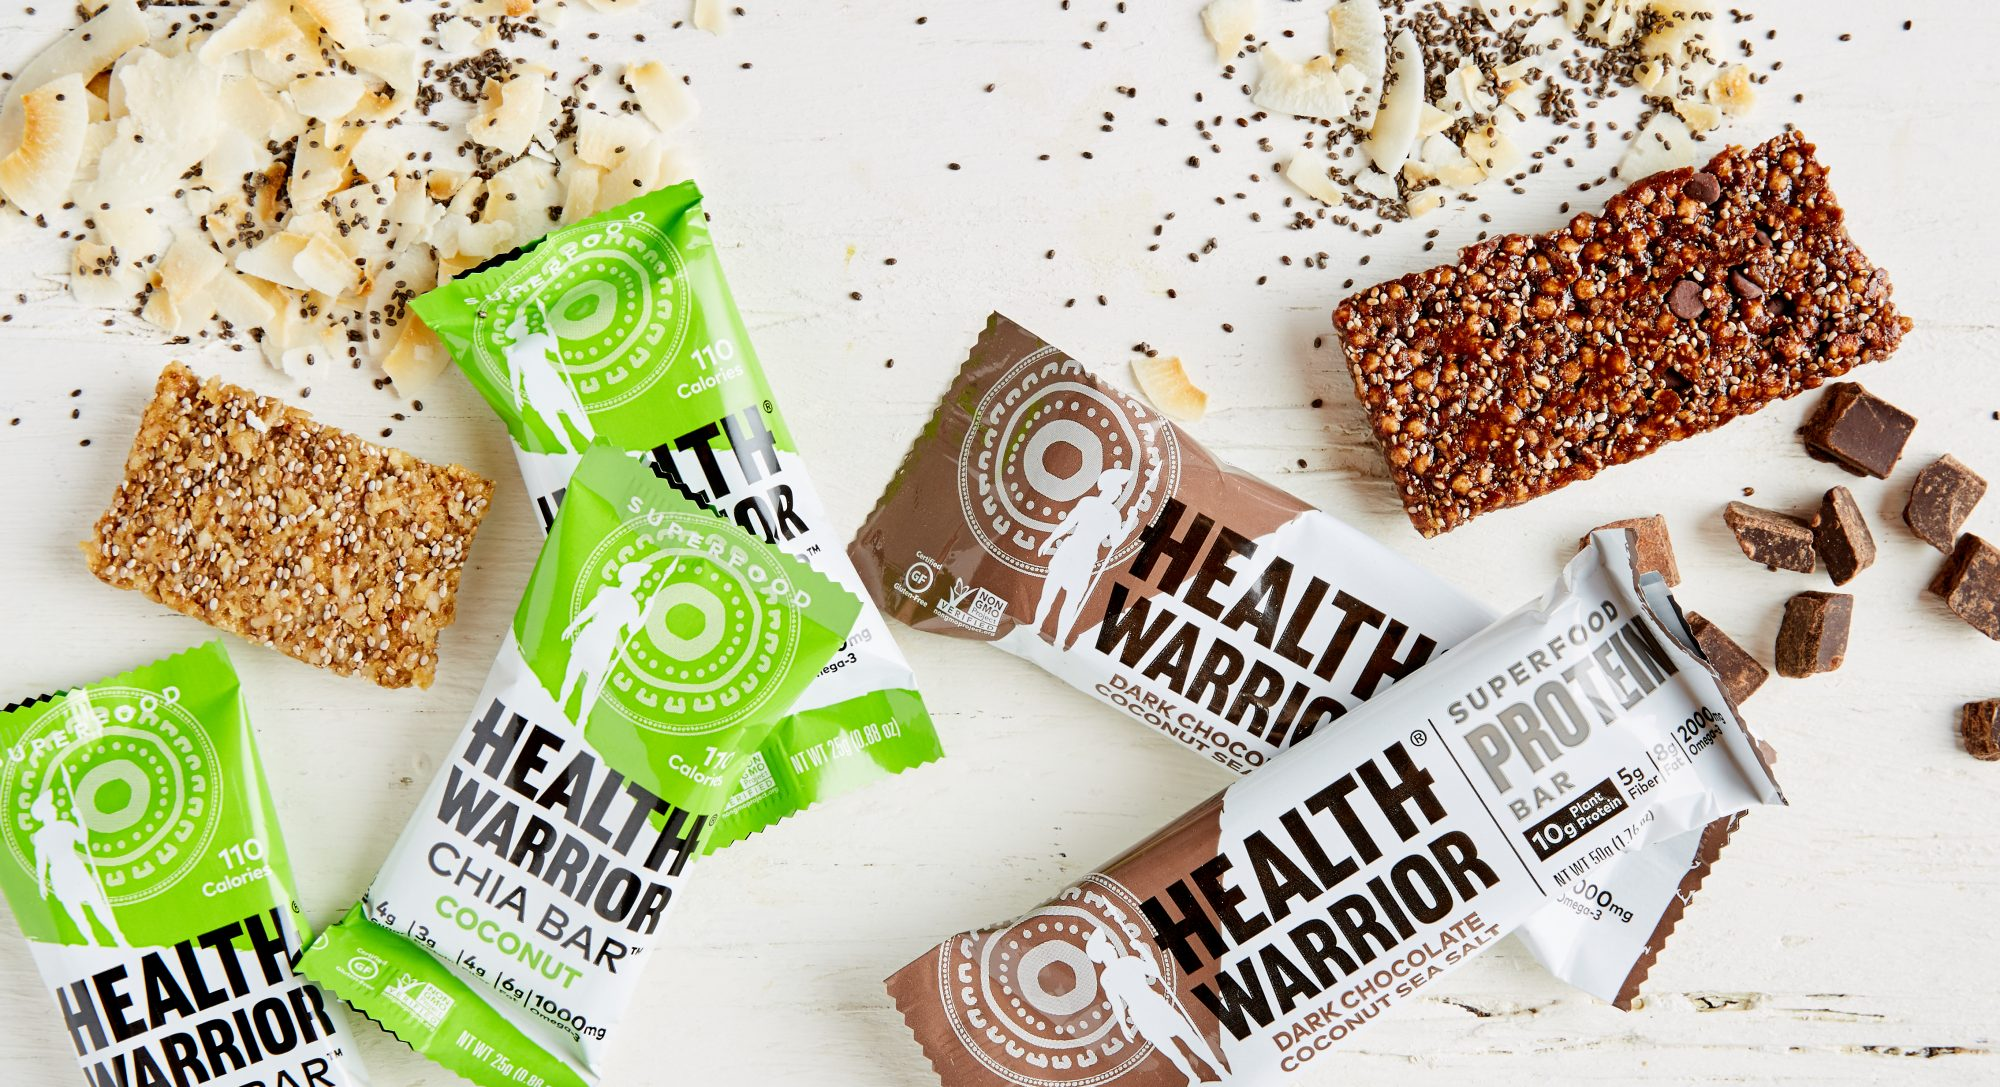 How Chia Seeds Inspired 3 College Friends to Start a Superfood Company